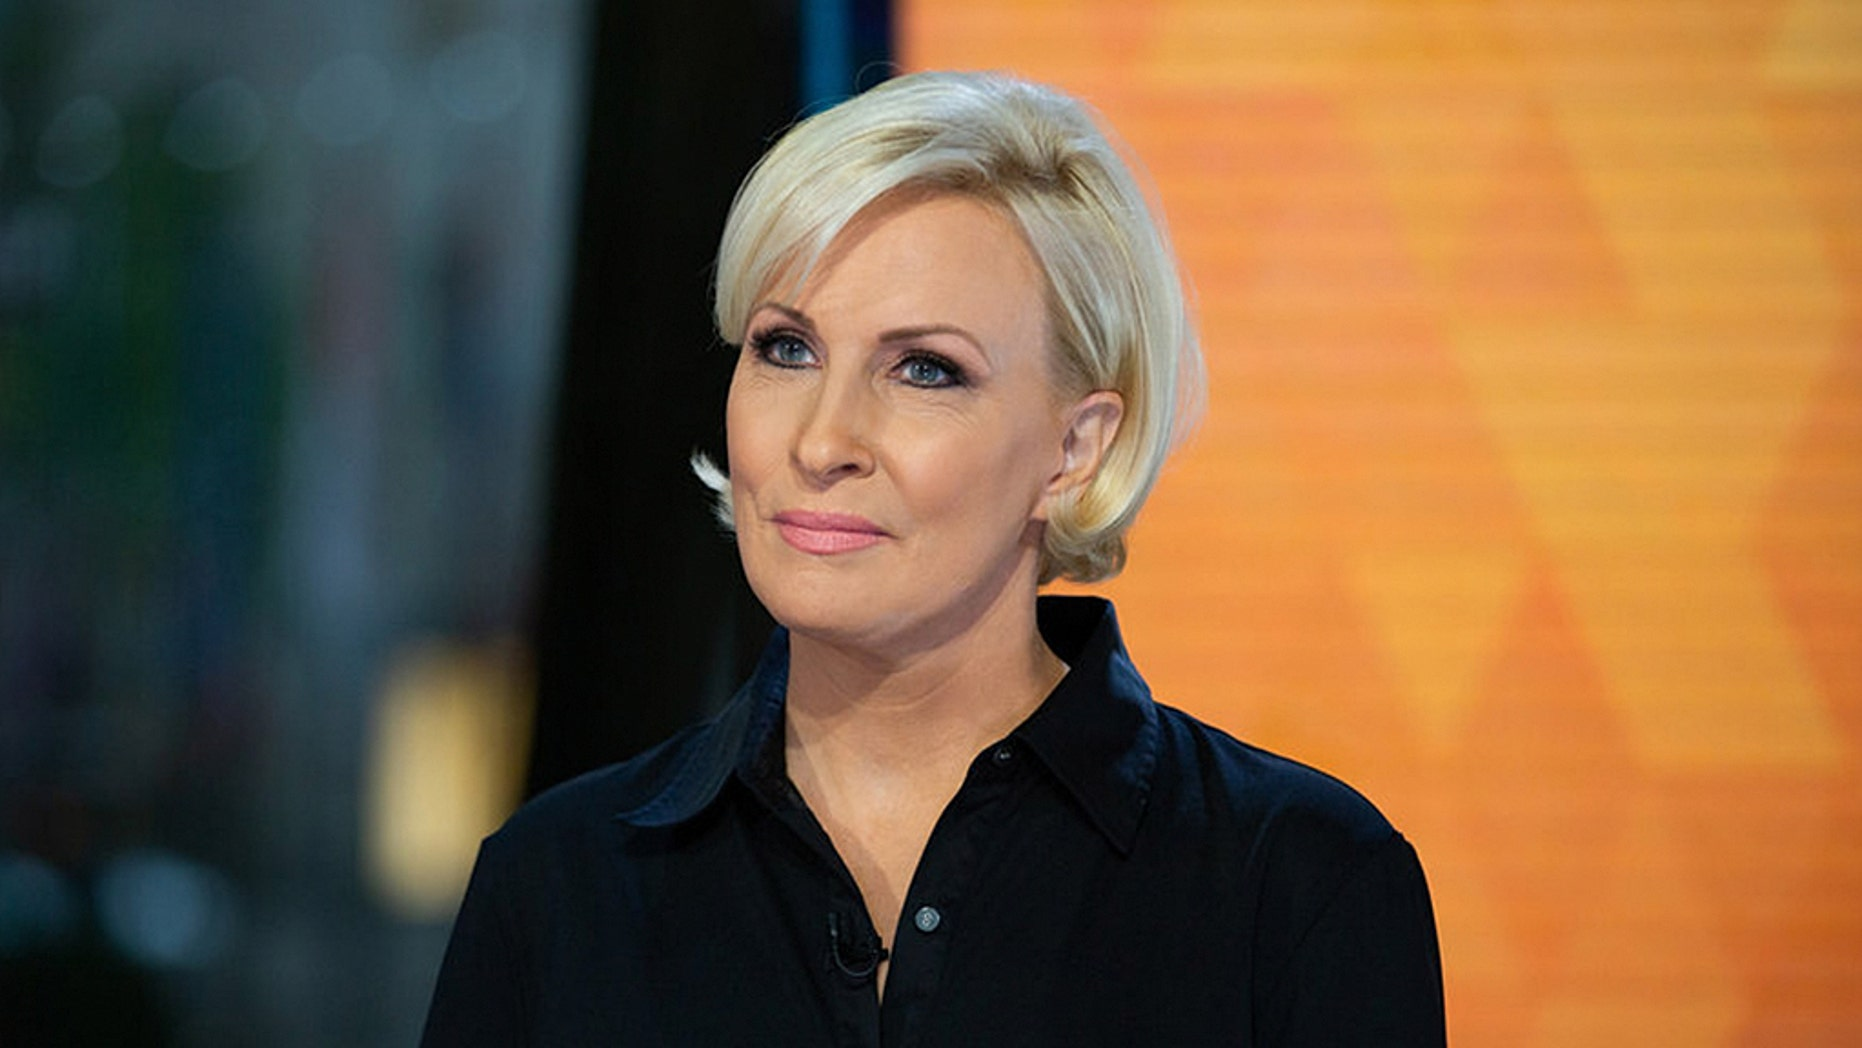 Mika Brzezinski apologizes for describing Mike Pompeo as 'butt boy'